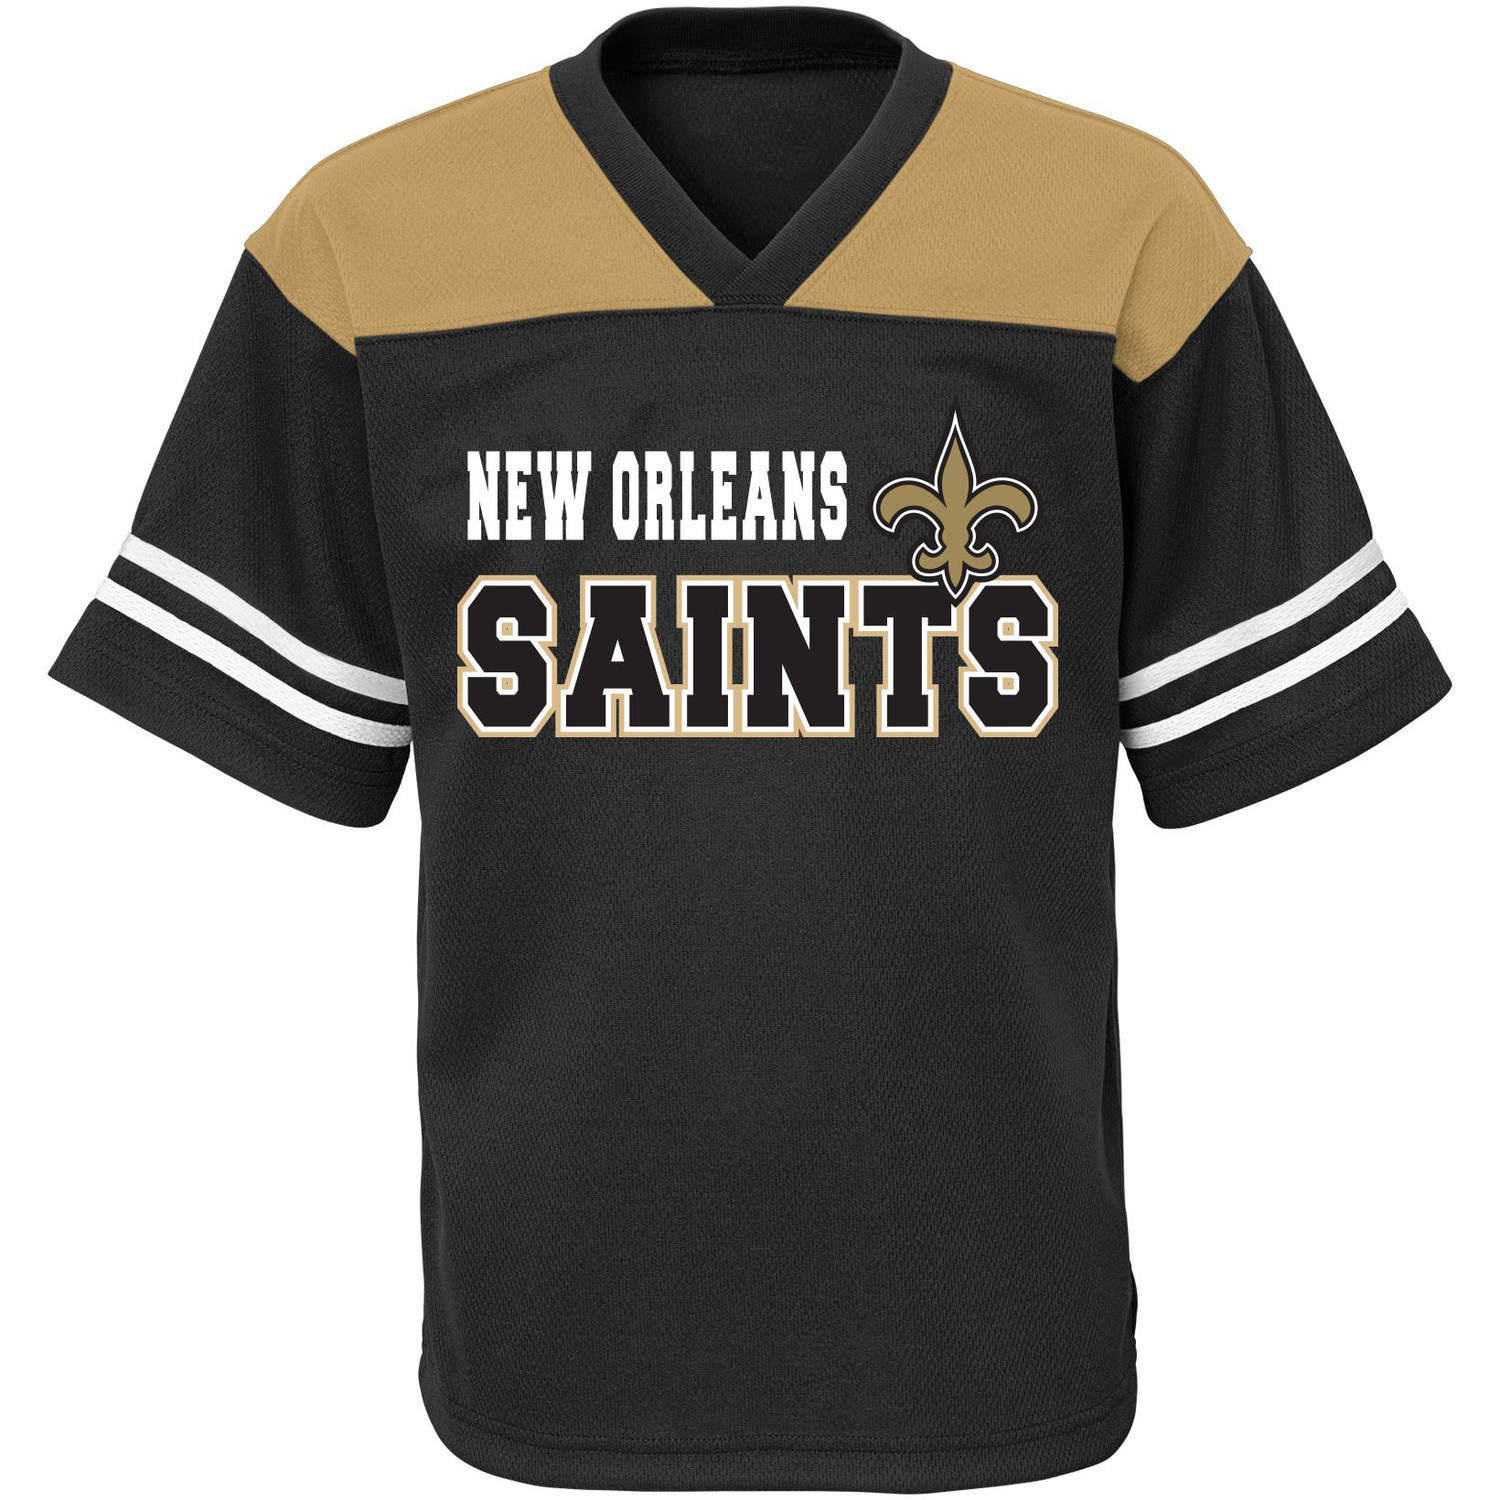 NFL Boys' New Orleans Saints Short Sleeve Mesh Team Top